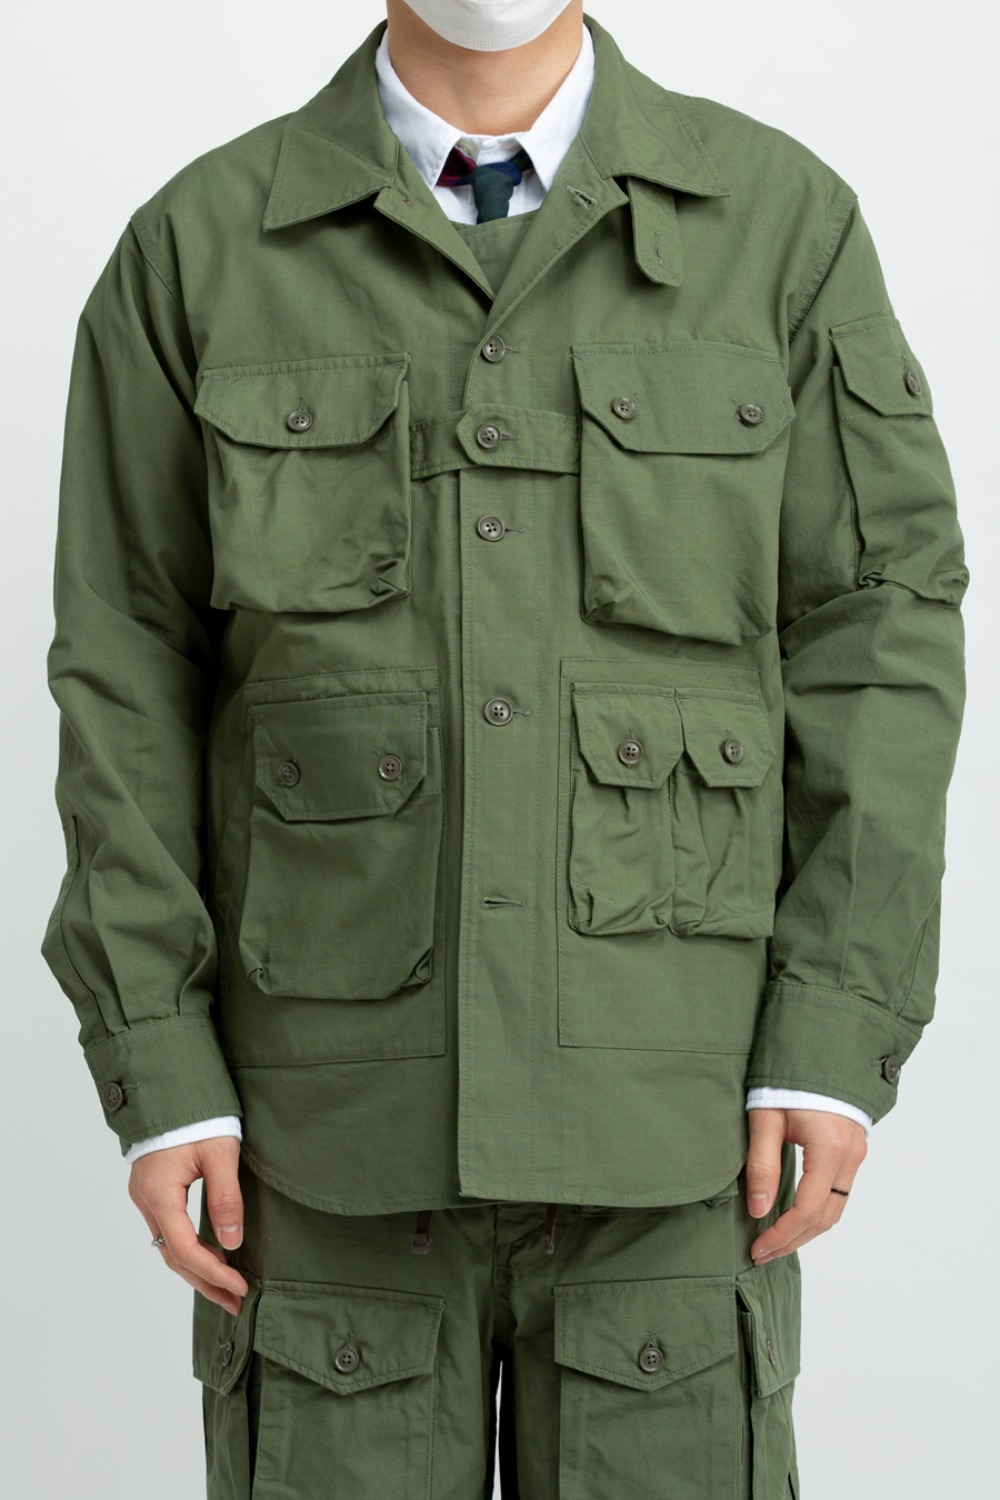 EXPLORER SHIRT JACKET OLIVE COTTON RIPSTOP OLIVE